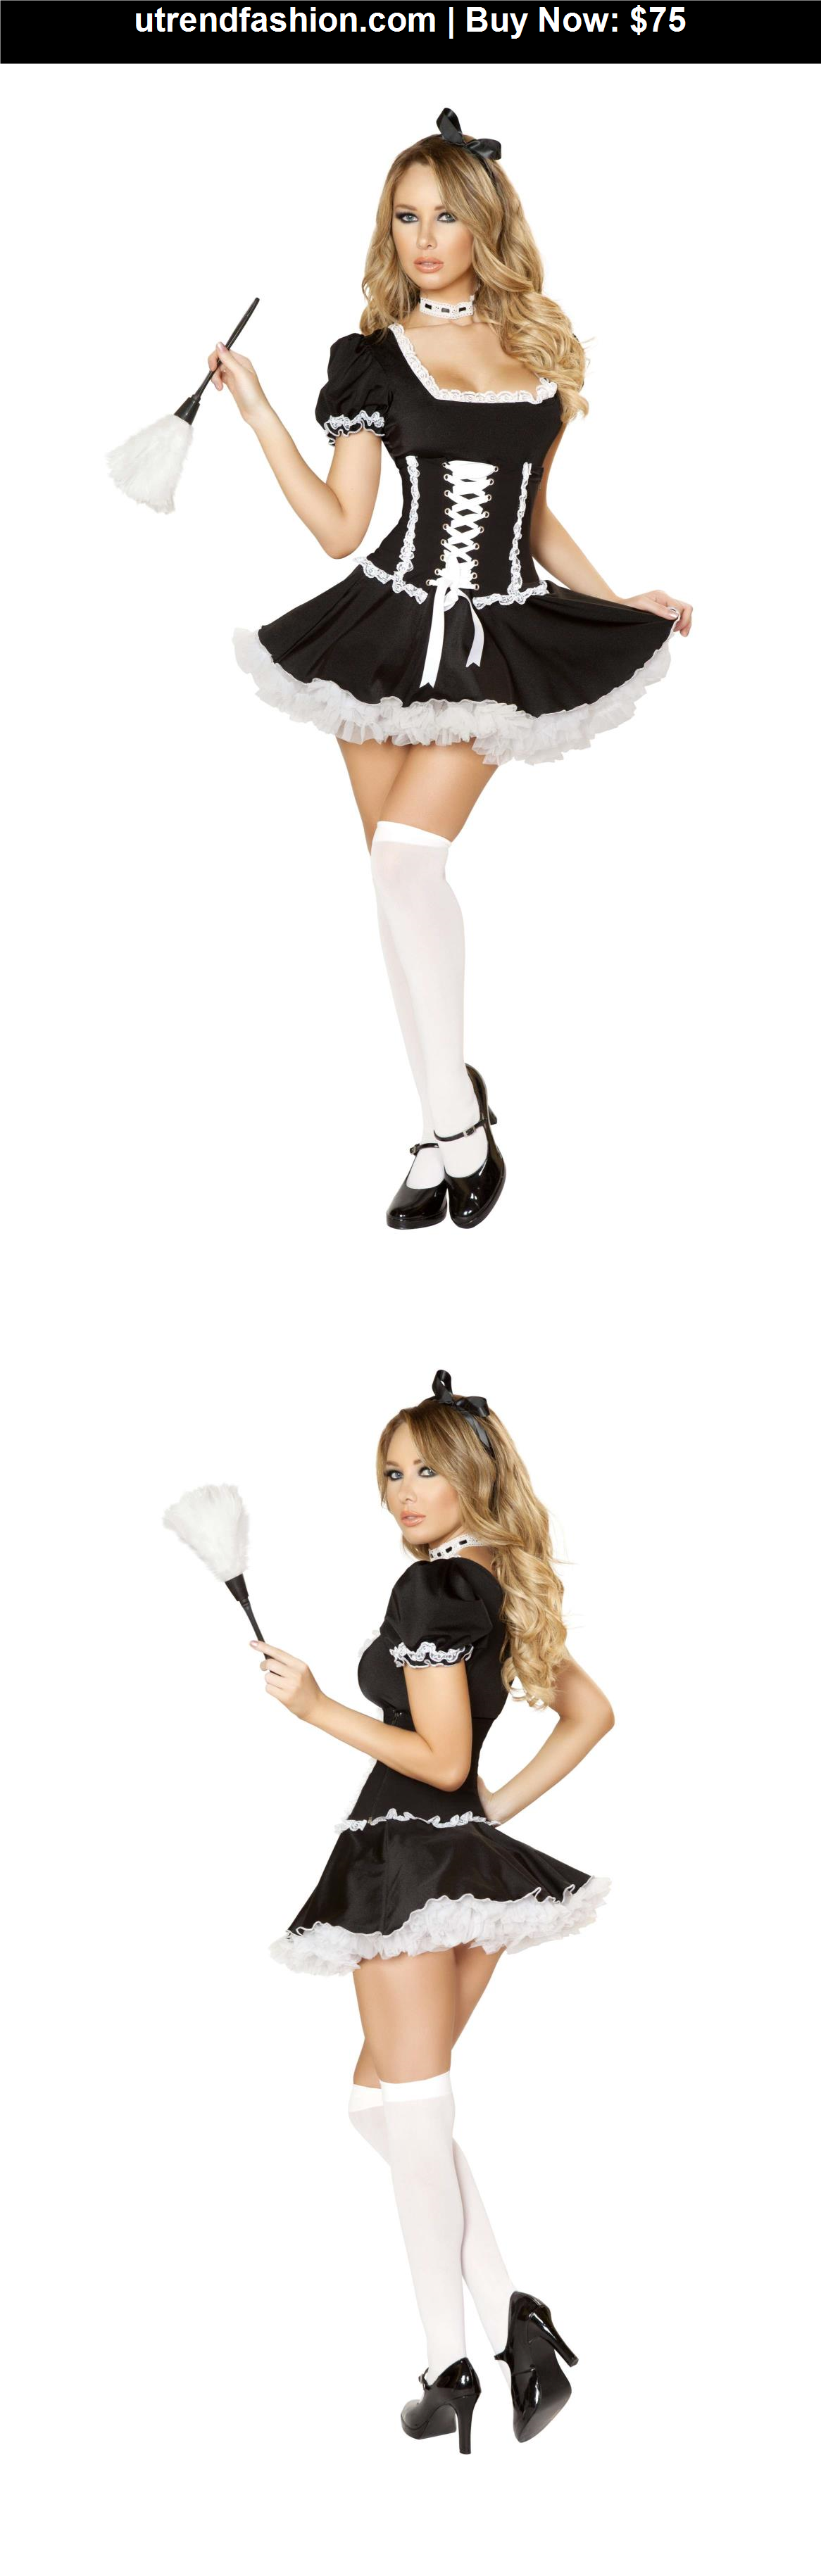 -Costume-Maiden: Material: Nylon/Spandex 4pc Mischievous Maid - BUY IT NOW ONLY $75